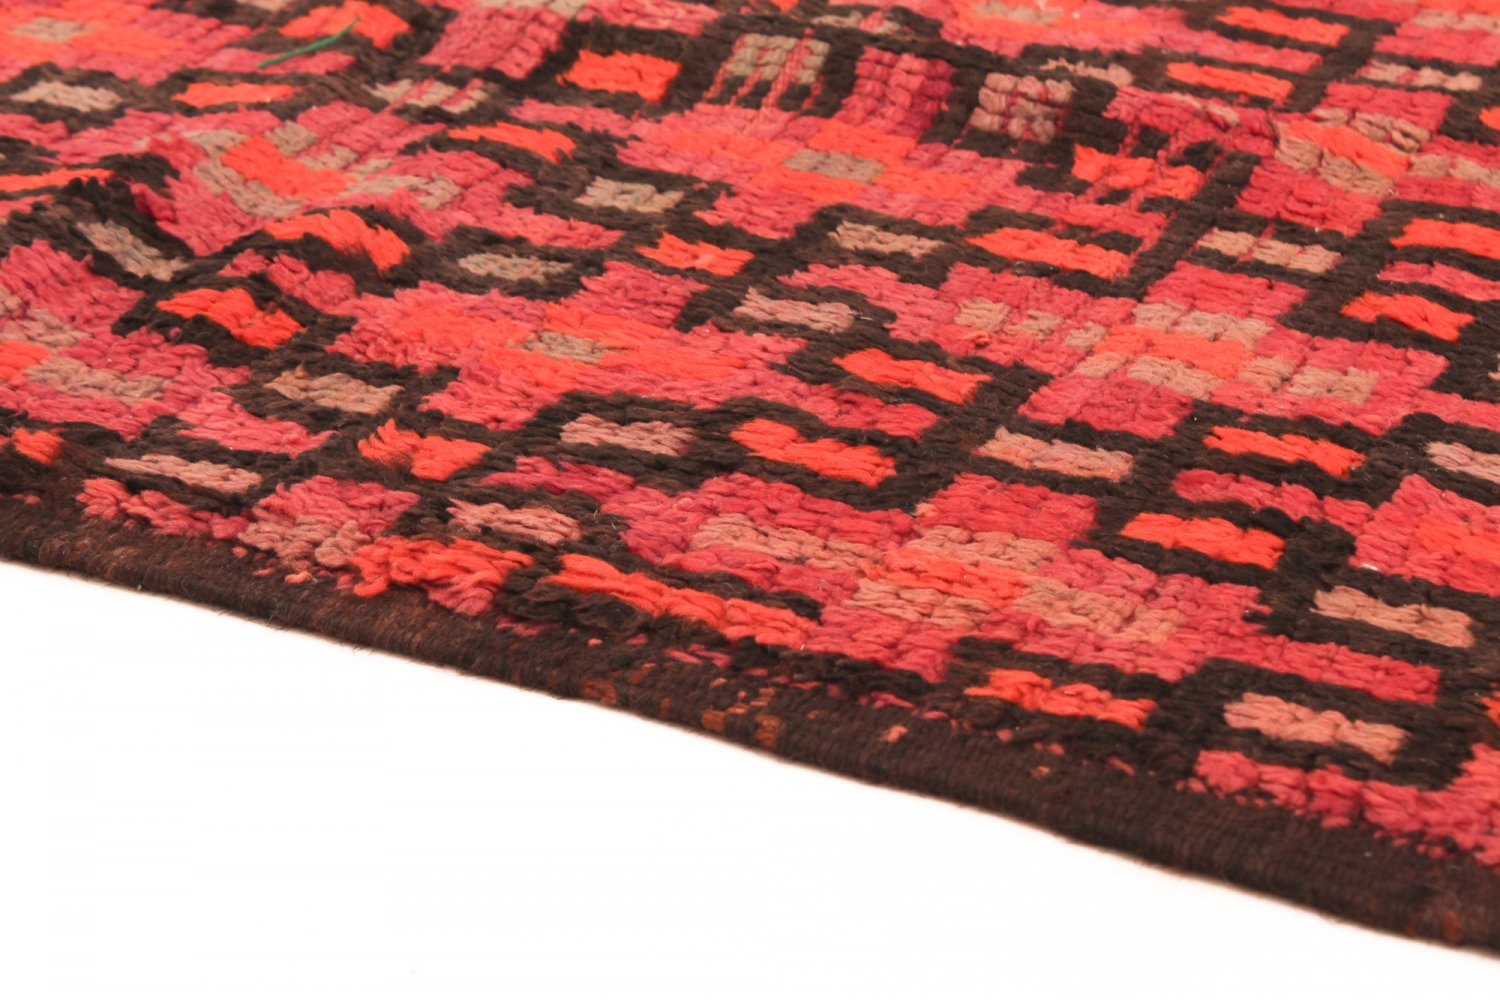 moroccan berber rug boucherouite 415 x 115 cm. Black Bedroom Furniture Sets. Home Design Ideas